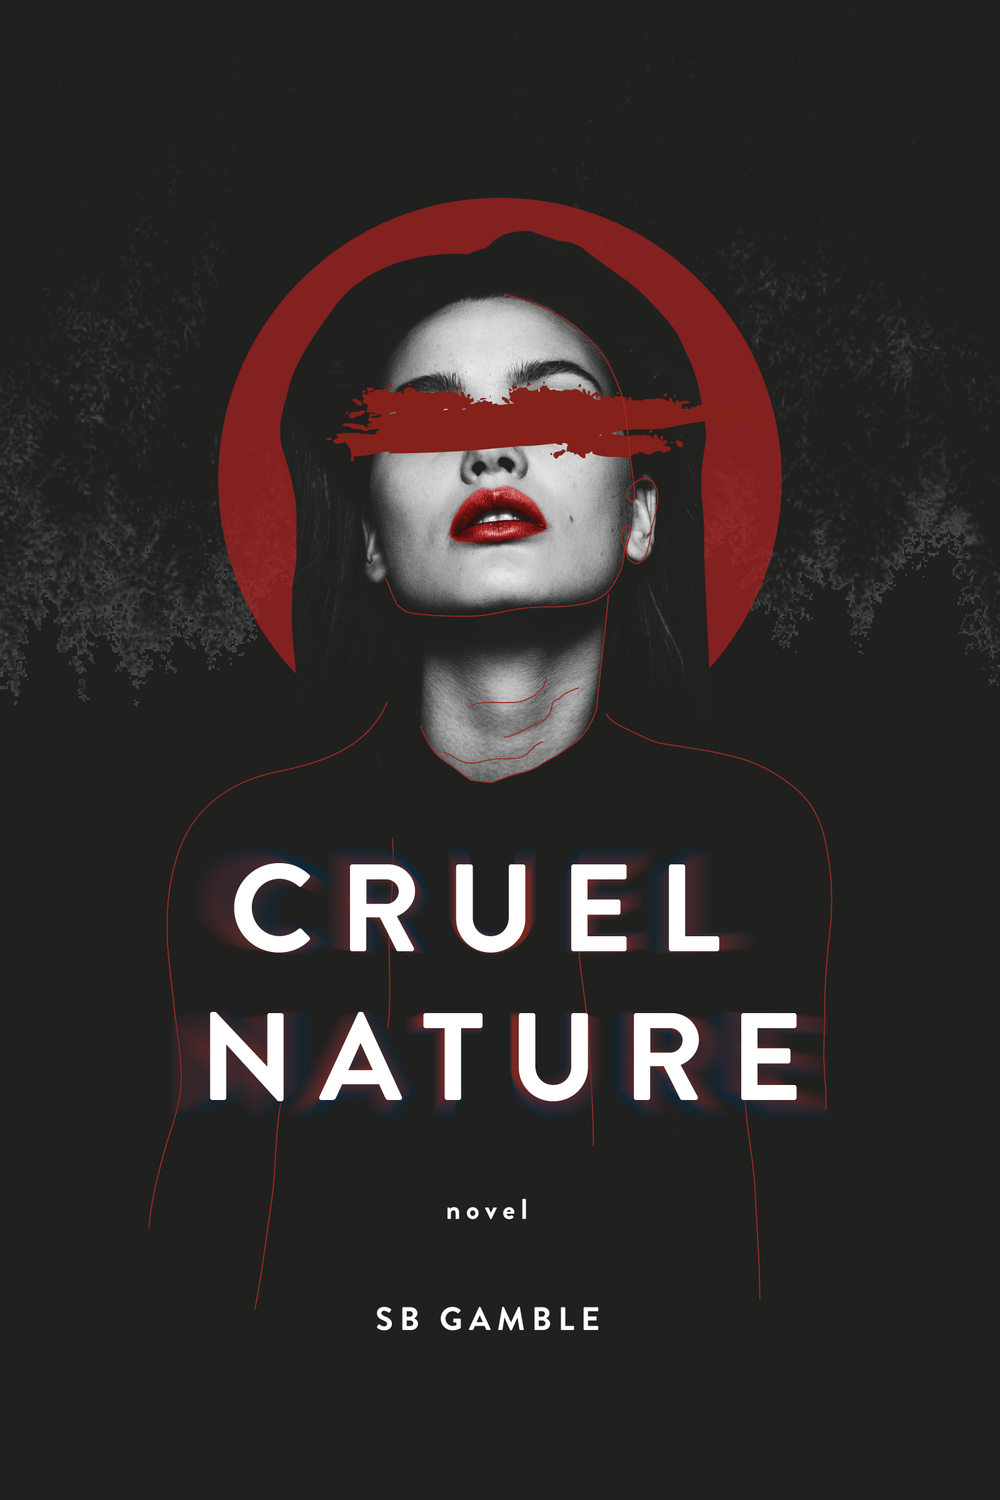 Cruel-Nature-SB-Gamble-Ebook.png